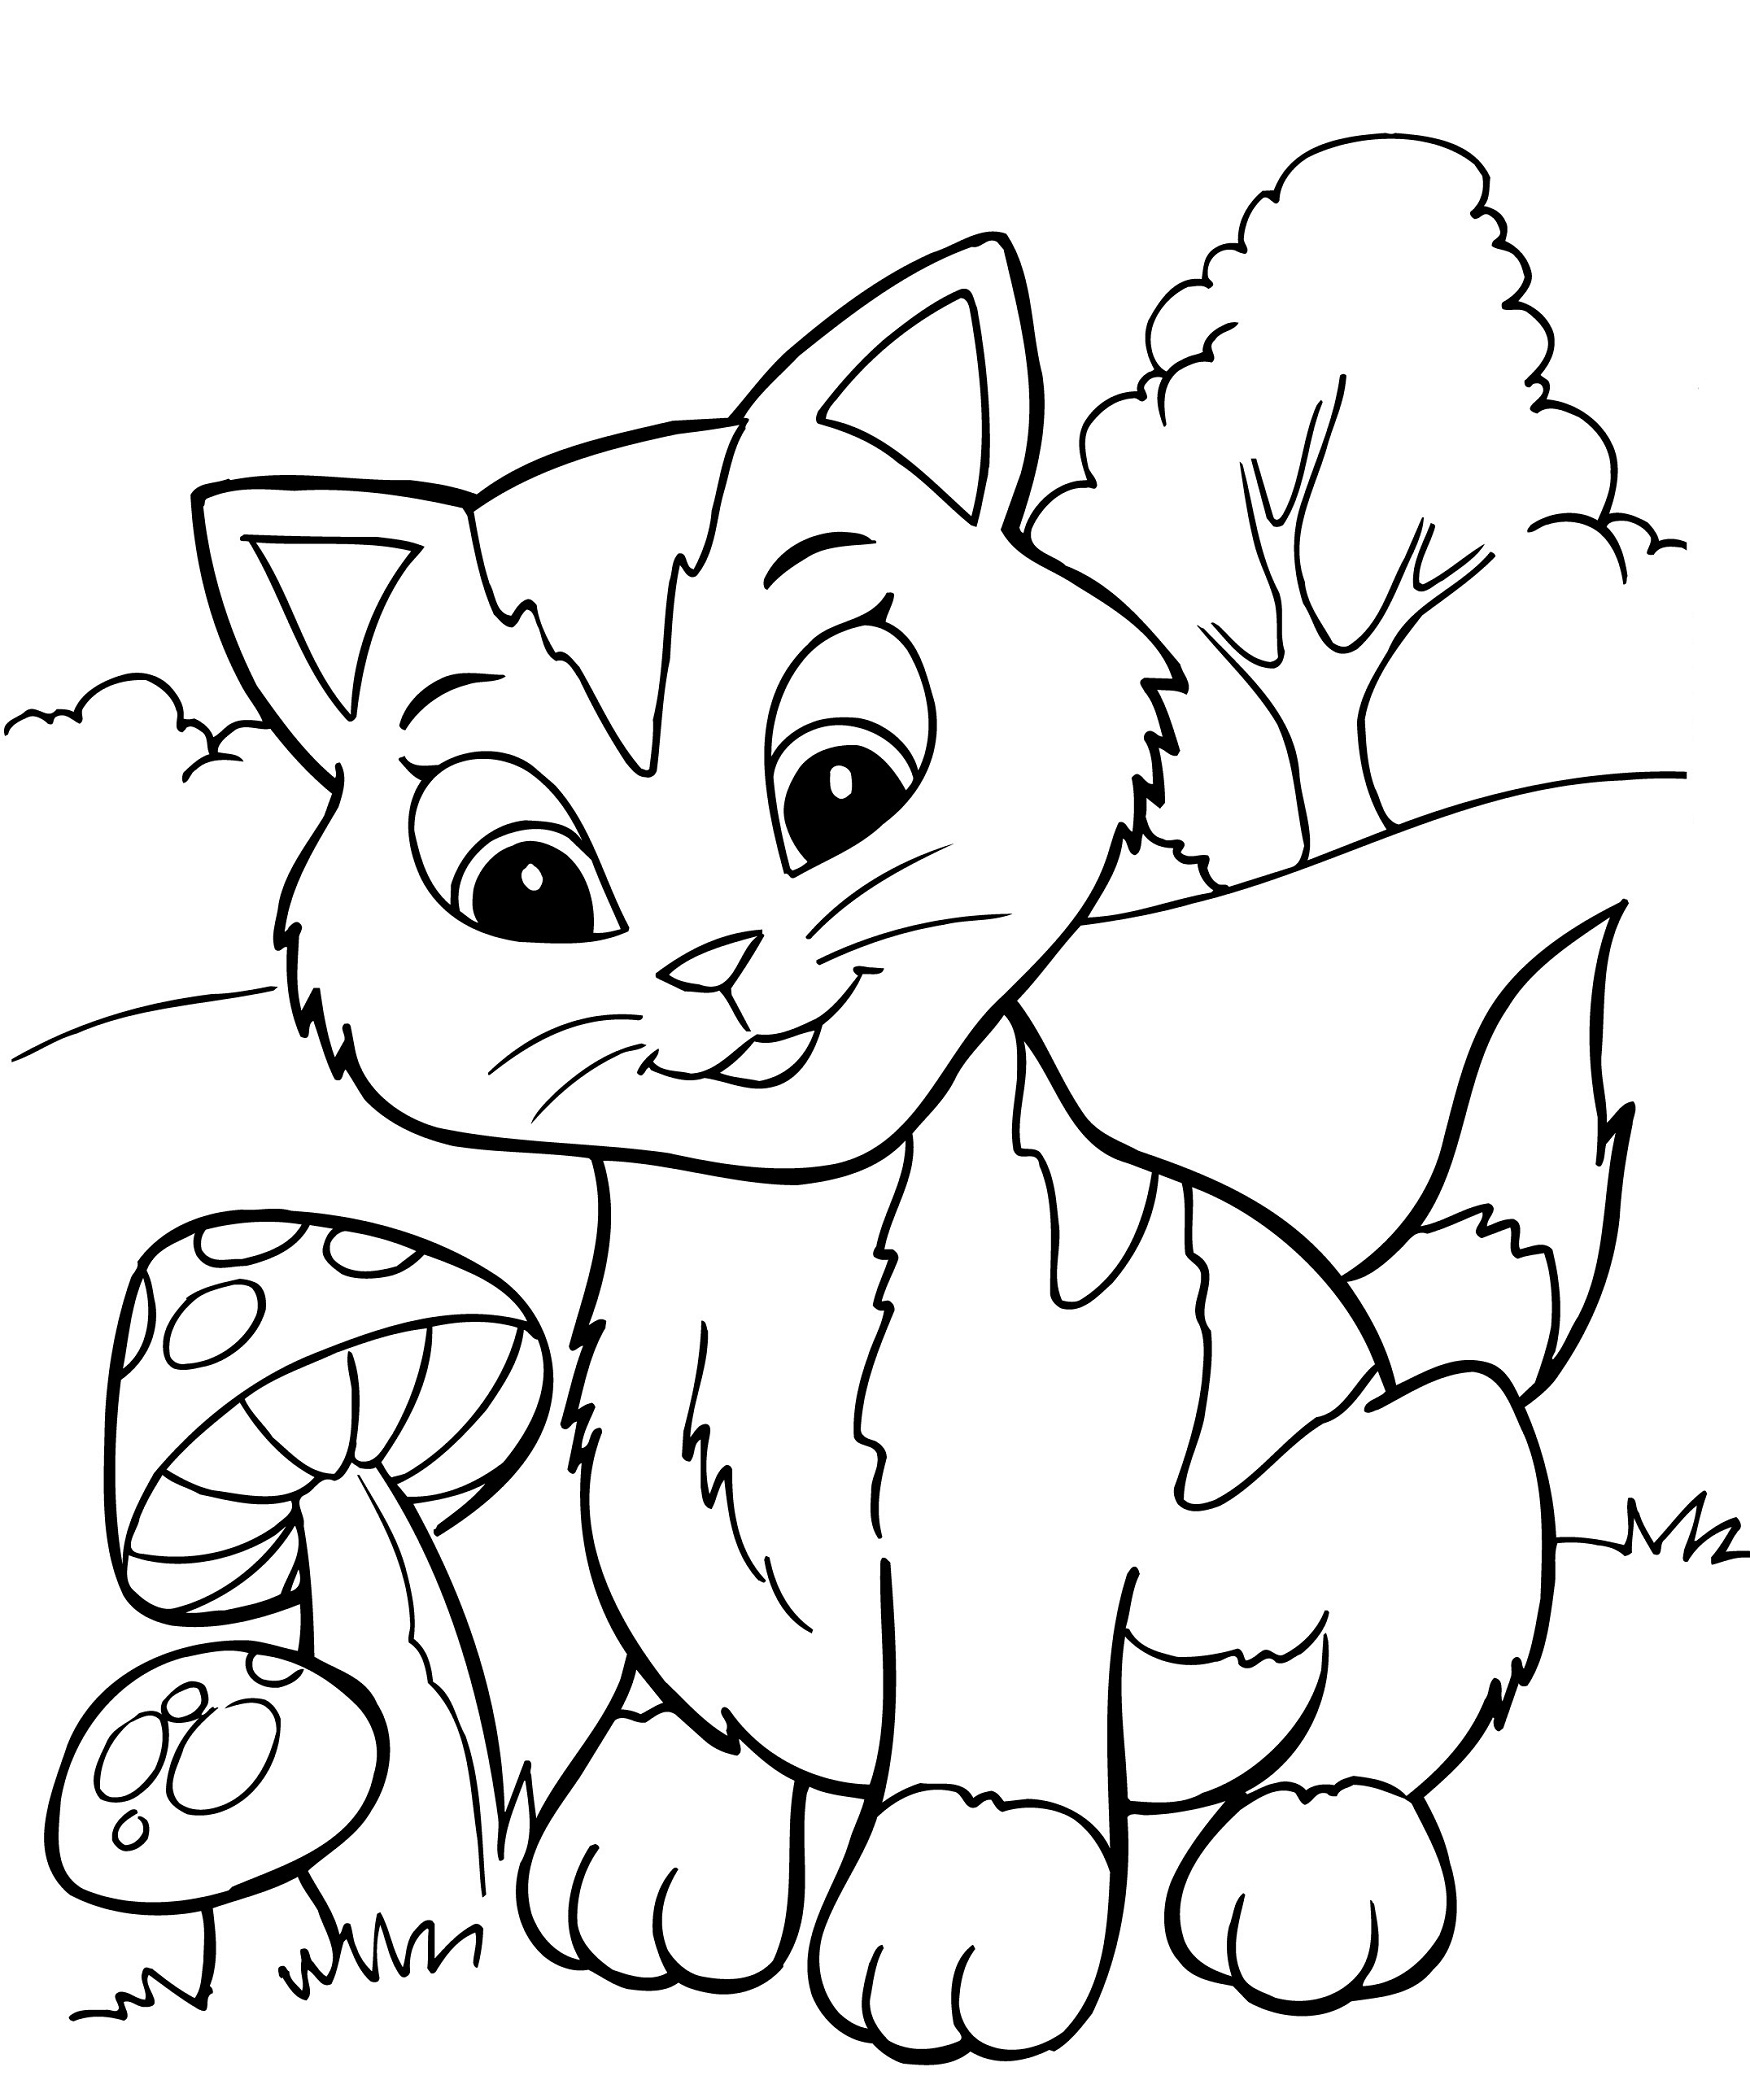 coloring pages of kittens Free Printable Kitten Coloring Pages For Kids   Best Coloring  coloring pages of kittens